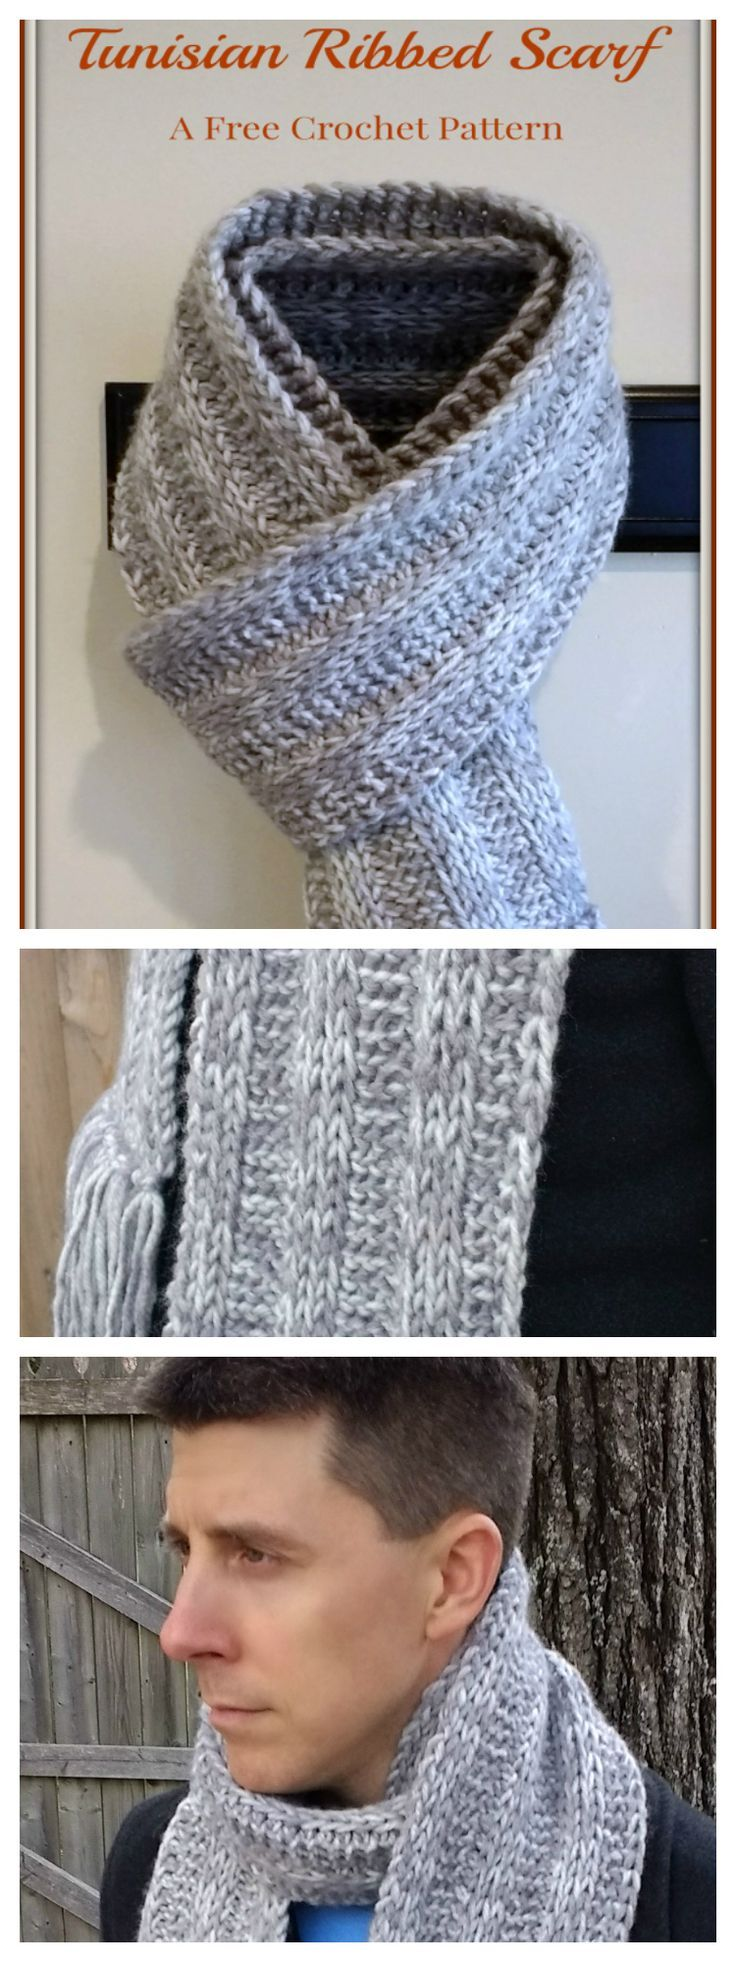 Easy tunisian crochet ribbed scarf pattern easy patterns easy tunisian crochet ribbed scarf pattern bankloansurffo Images